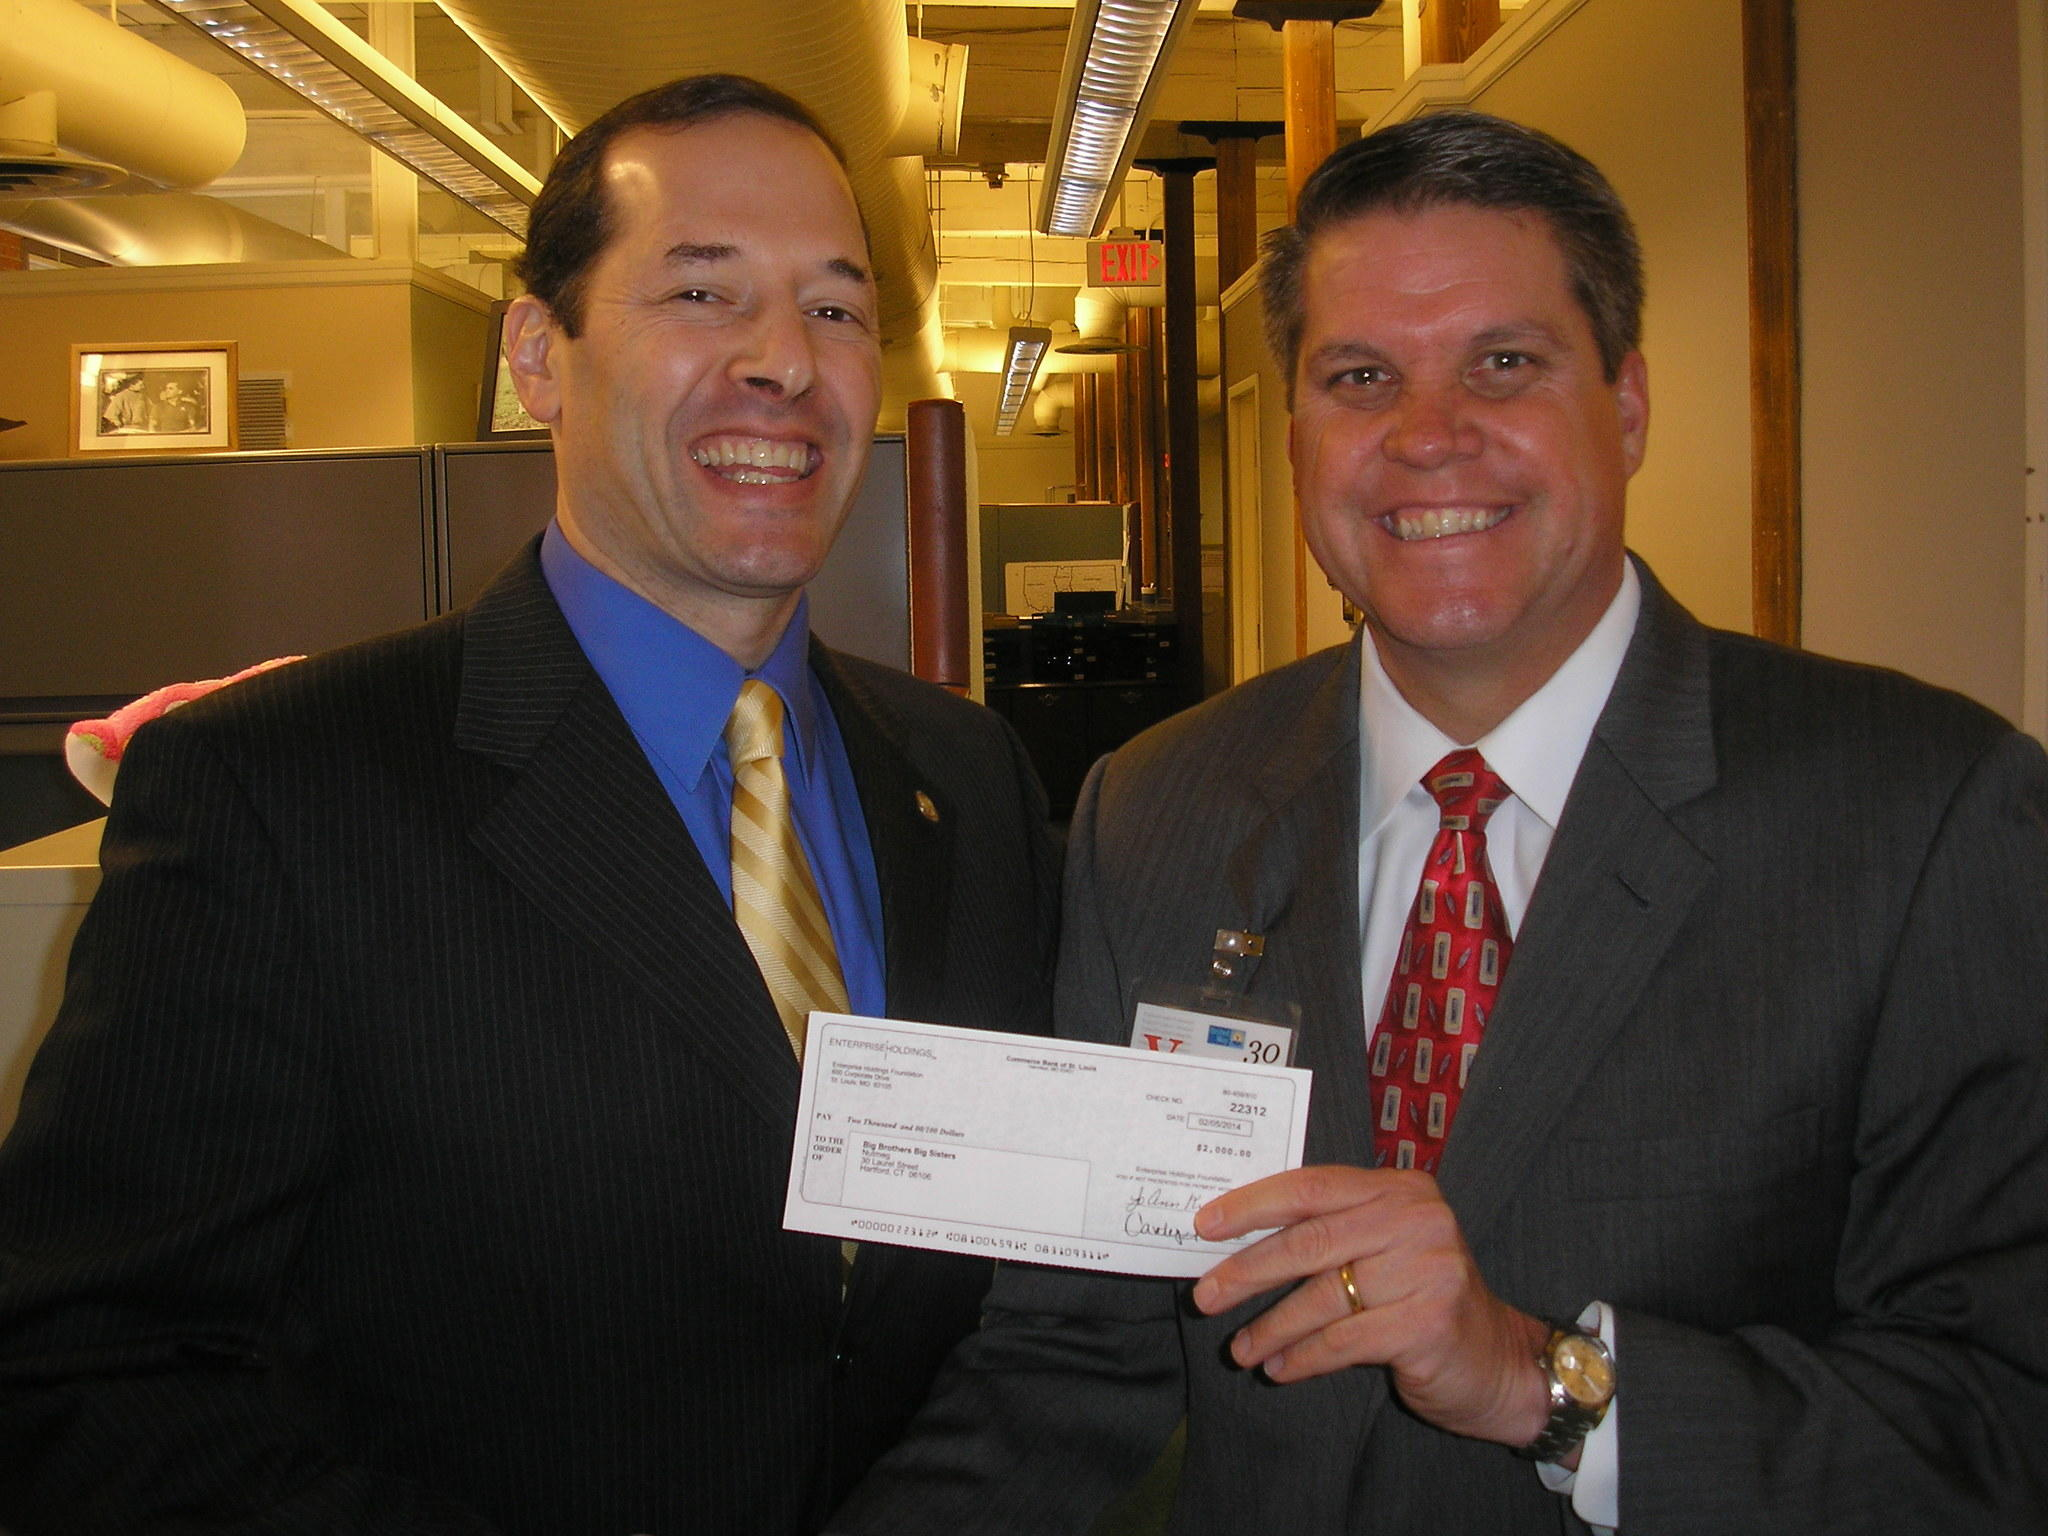 At the donation presentation were, from left, Andy Fleischmann, Nutmeg's president & CEO; and Avon's Larry Kucharski, vice president/general manager of Enterprise Holdings.